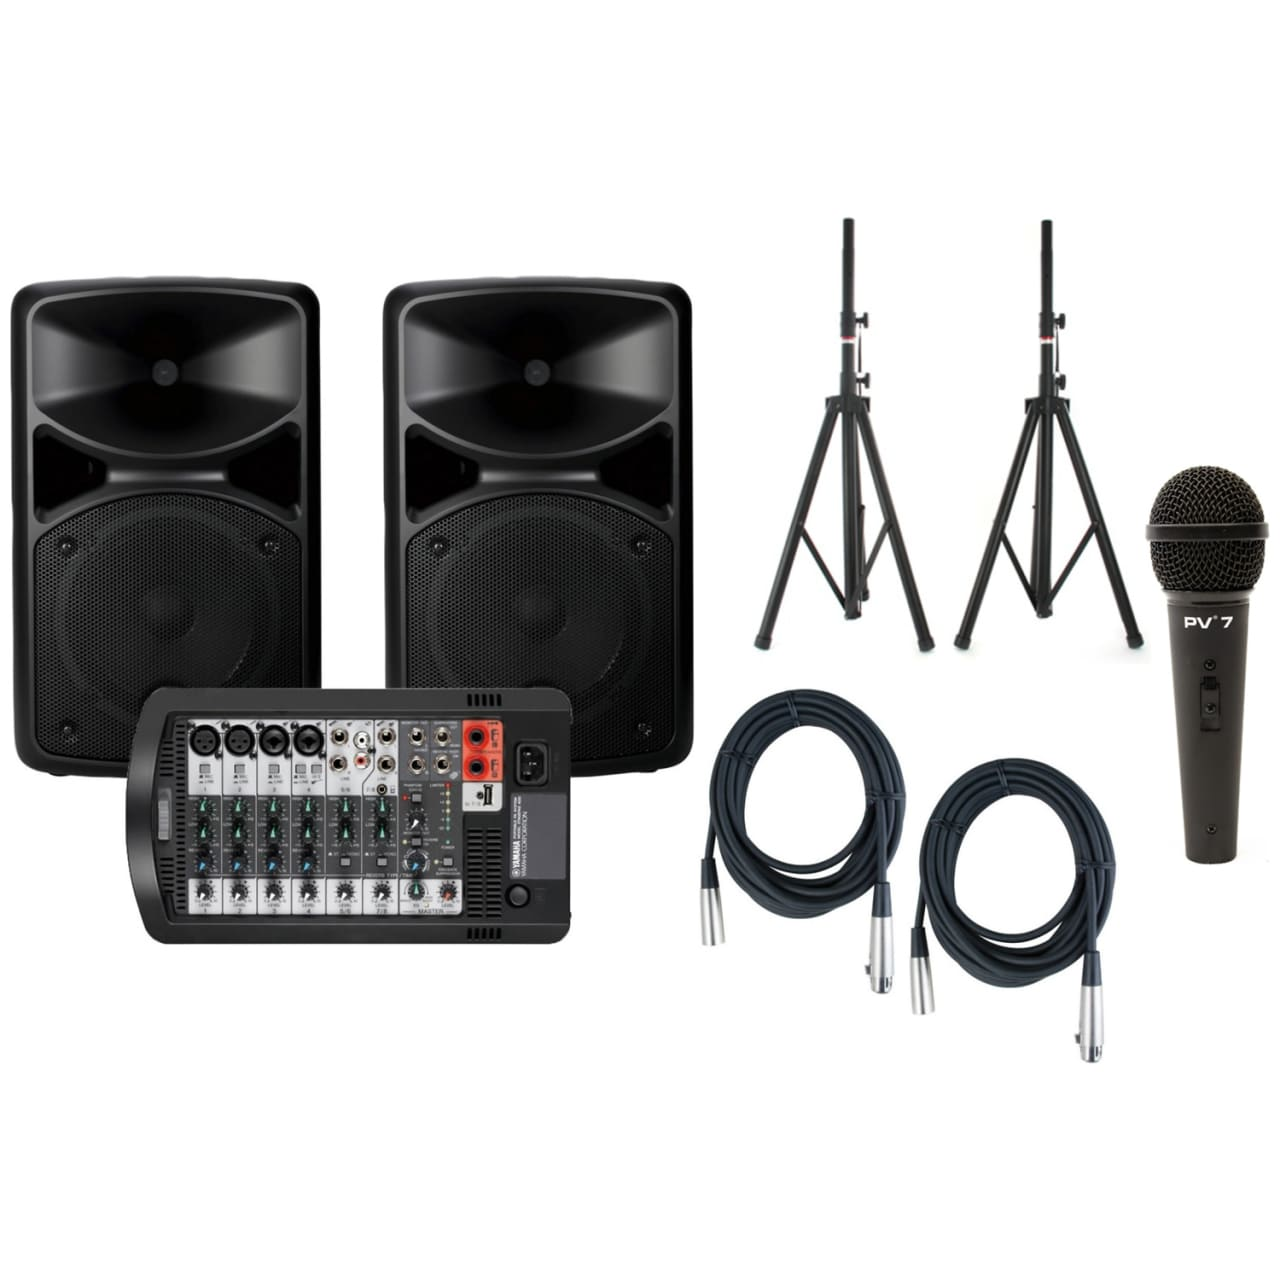 Yamaha stagepas 400i portable pa system bundle reverb for Yamaha stagepas 400i price